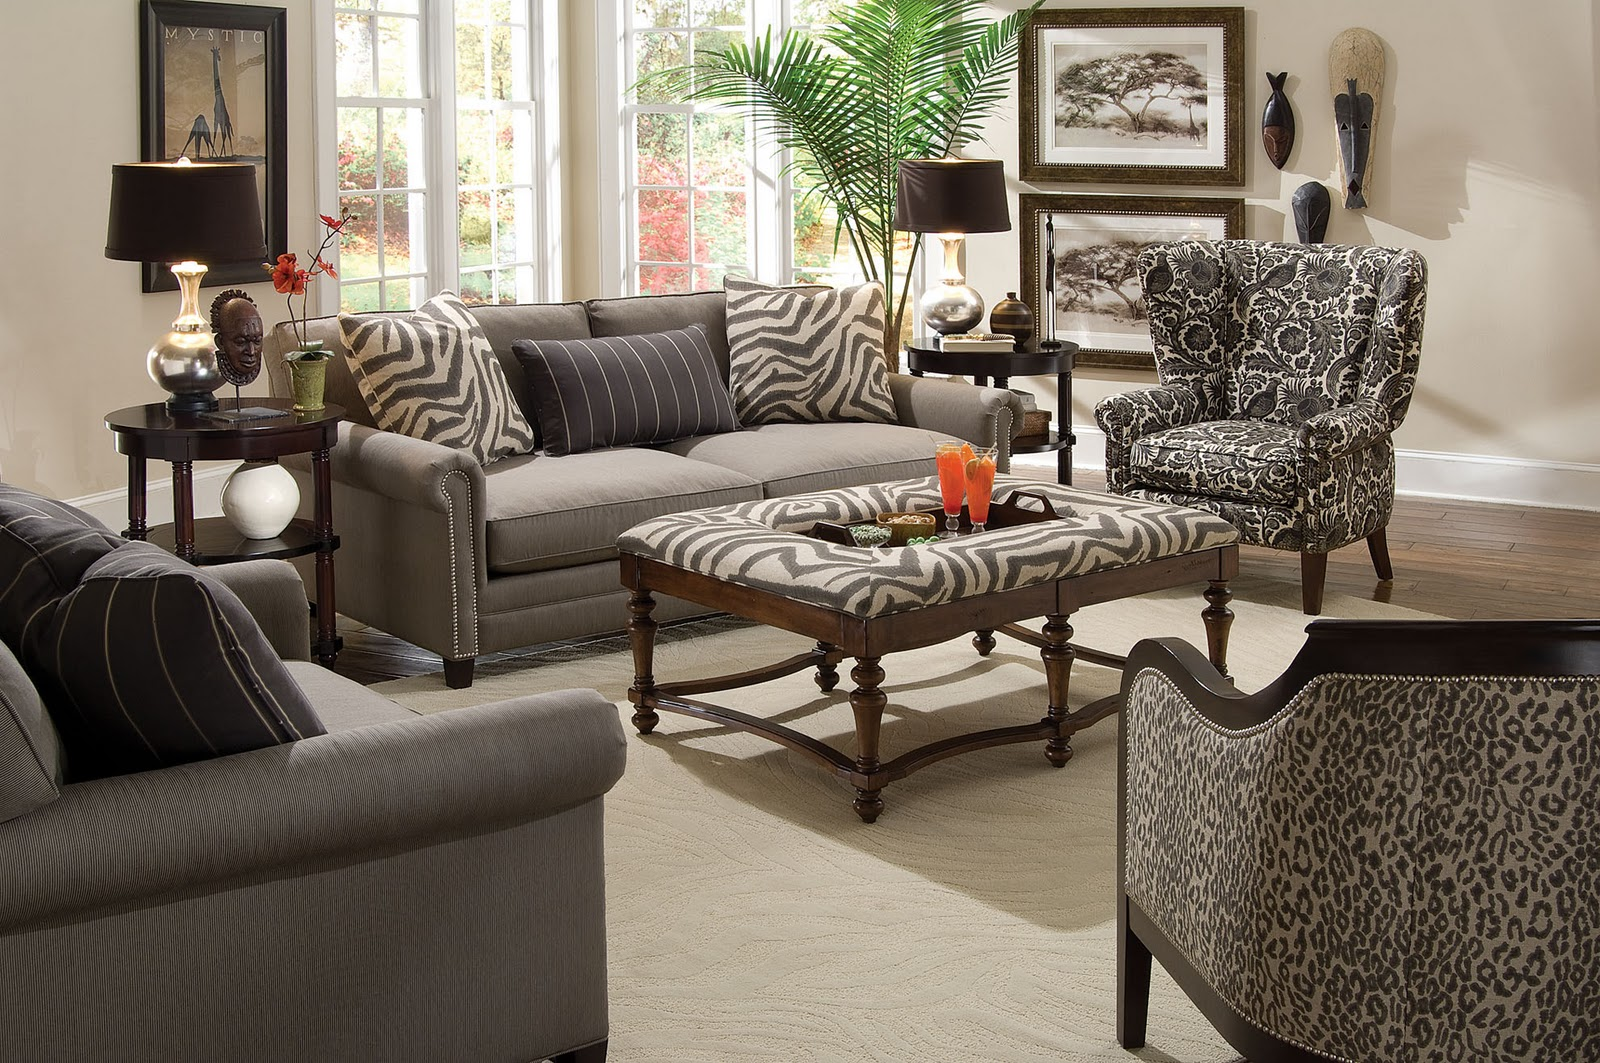 New Home, New Furniture Styles 2012 title=